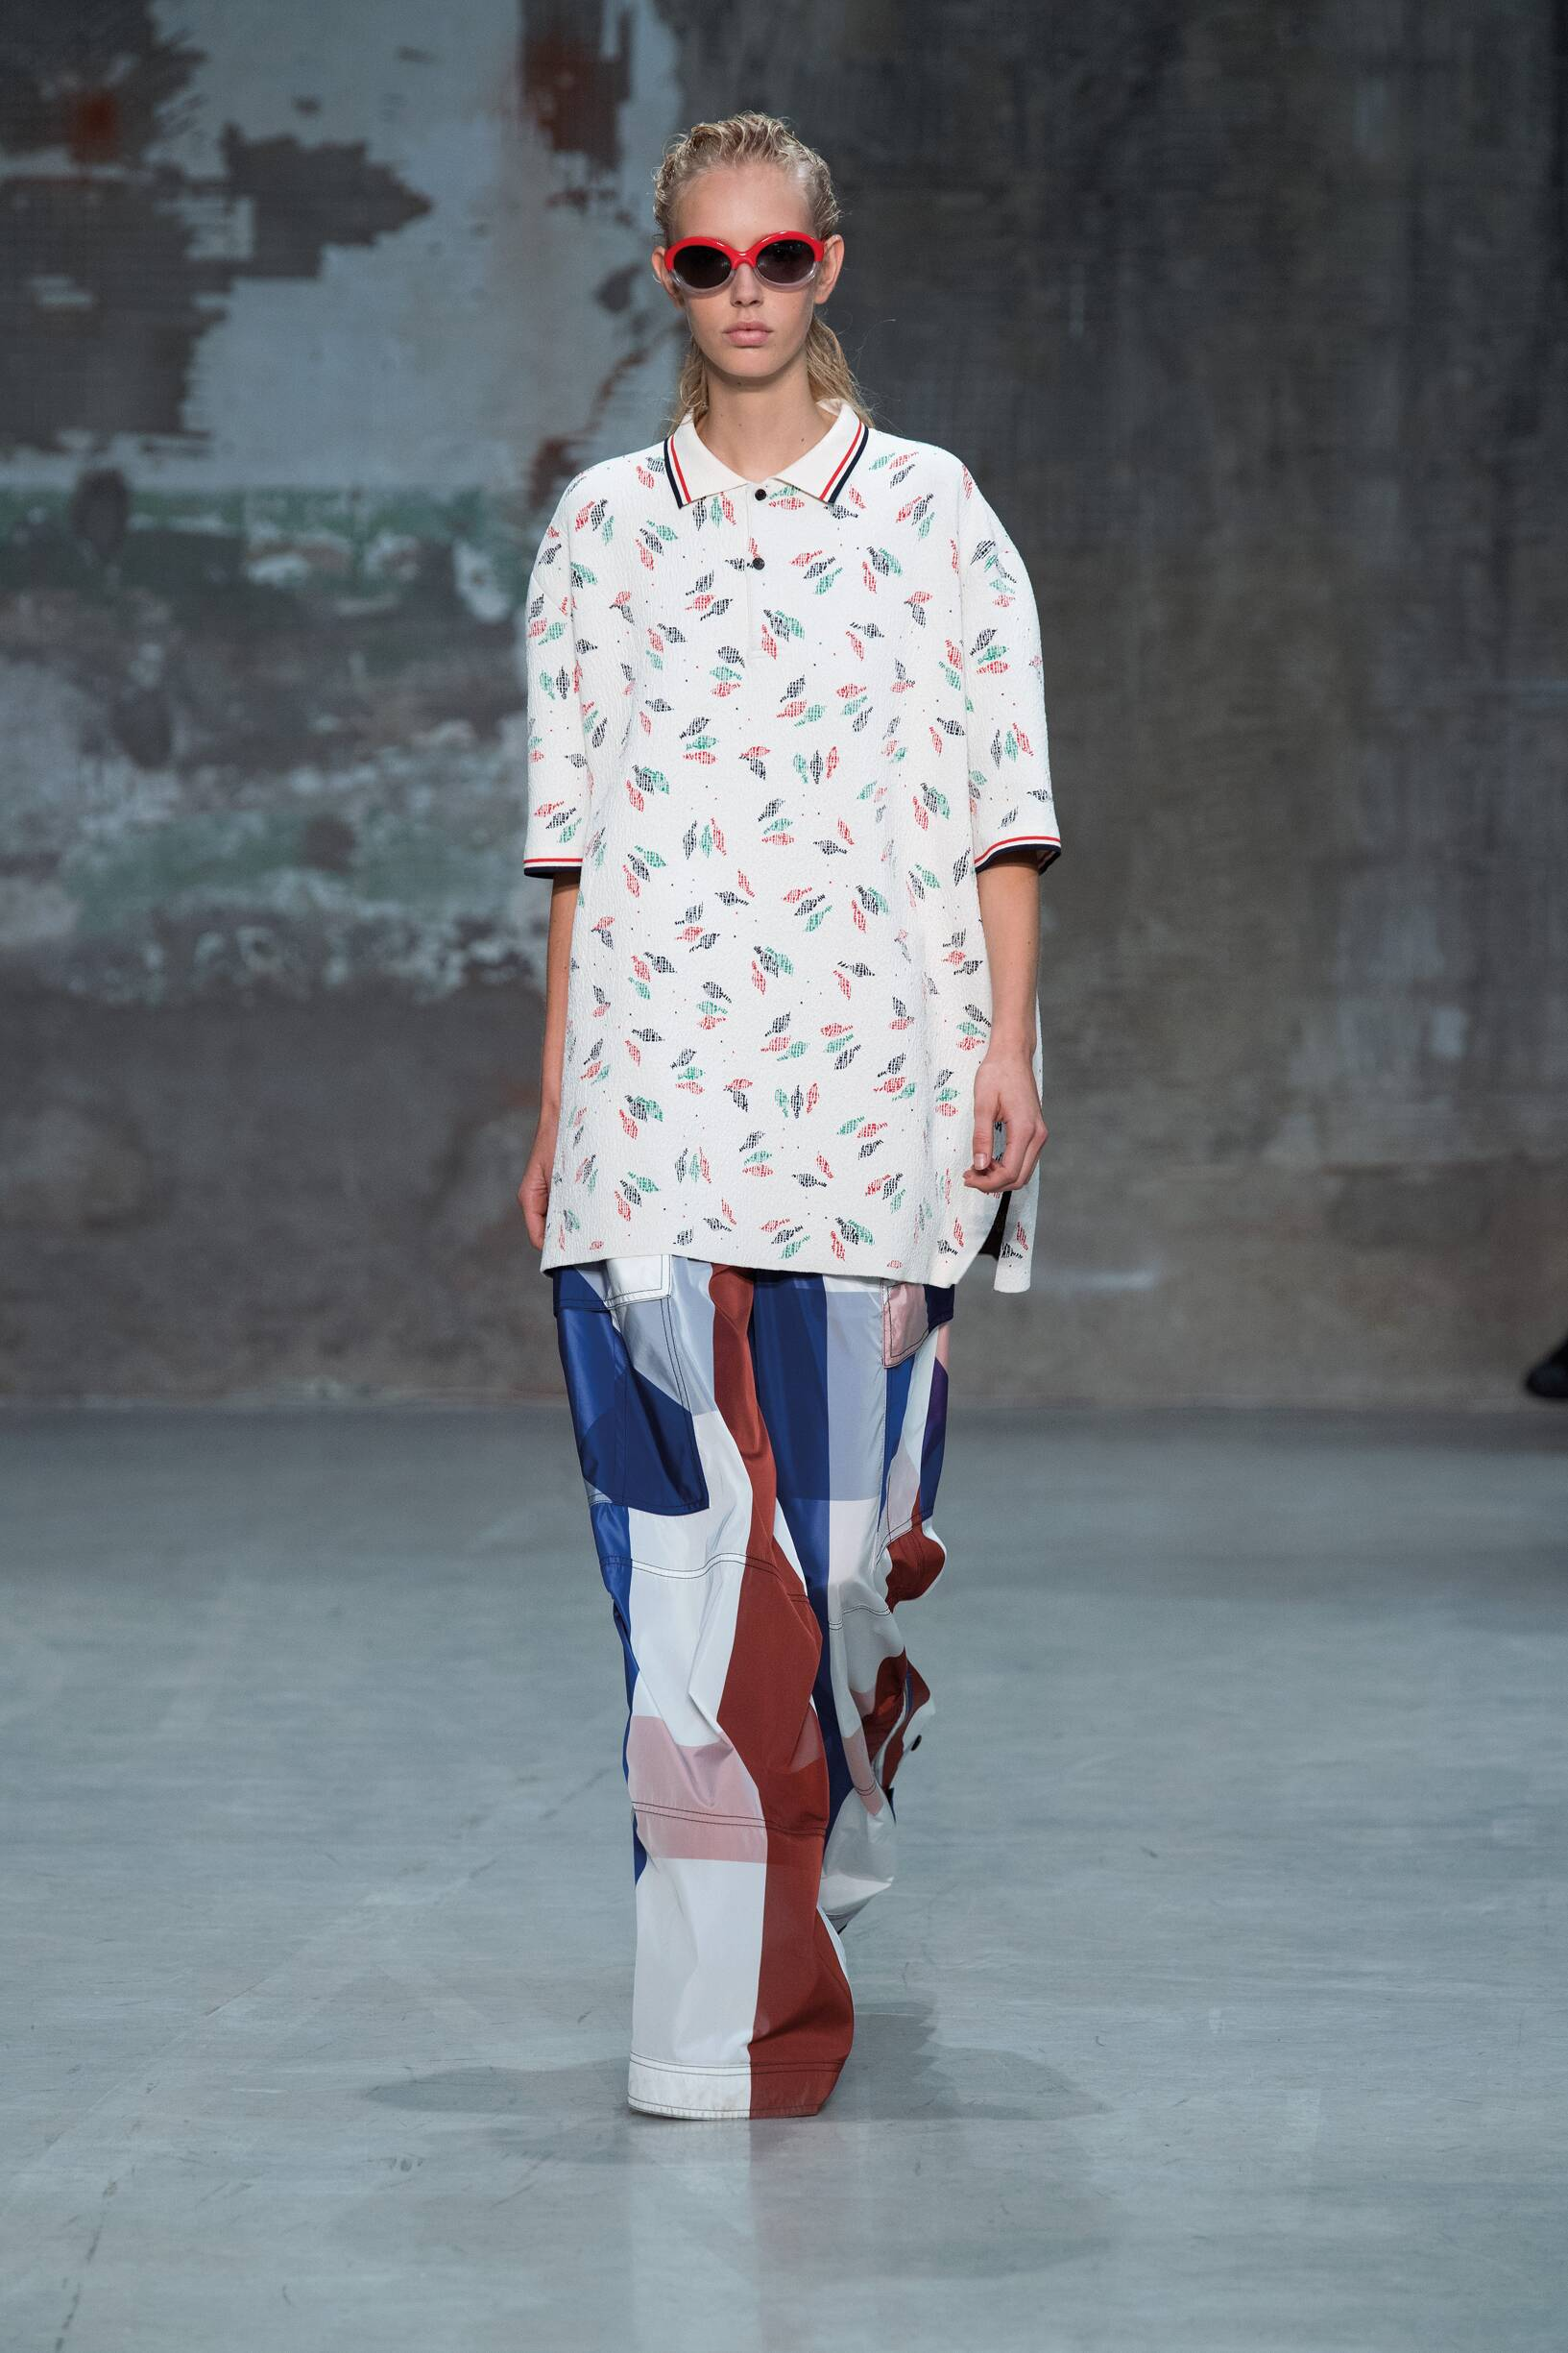 Marni Women's Collection 2018